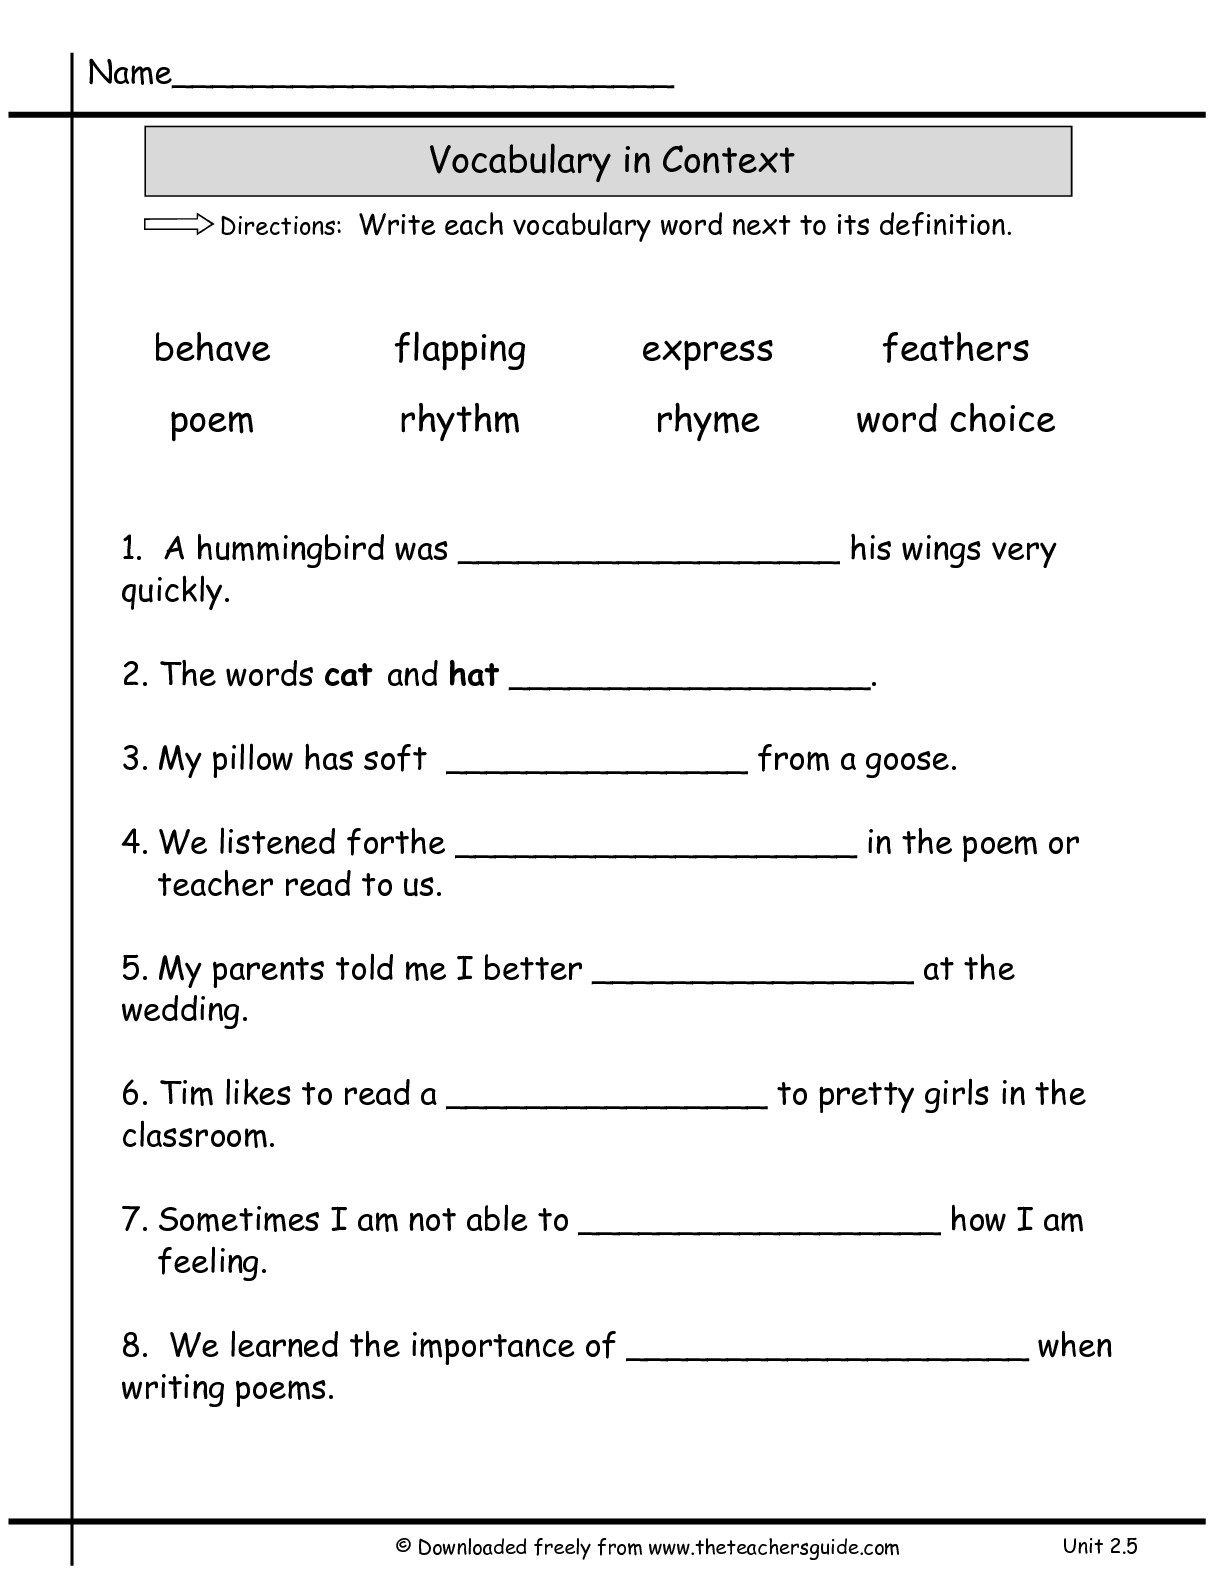 17 Best Images Of Spelling Worksheets 2nd Grade Sight Words